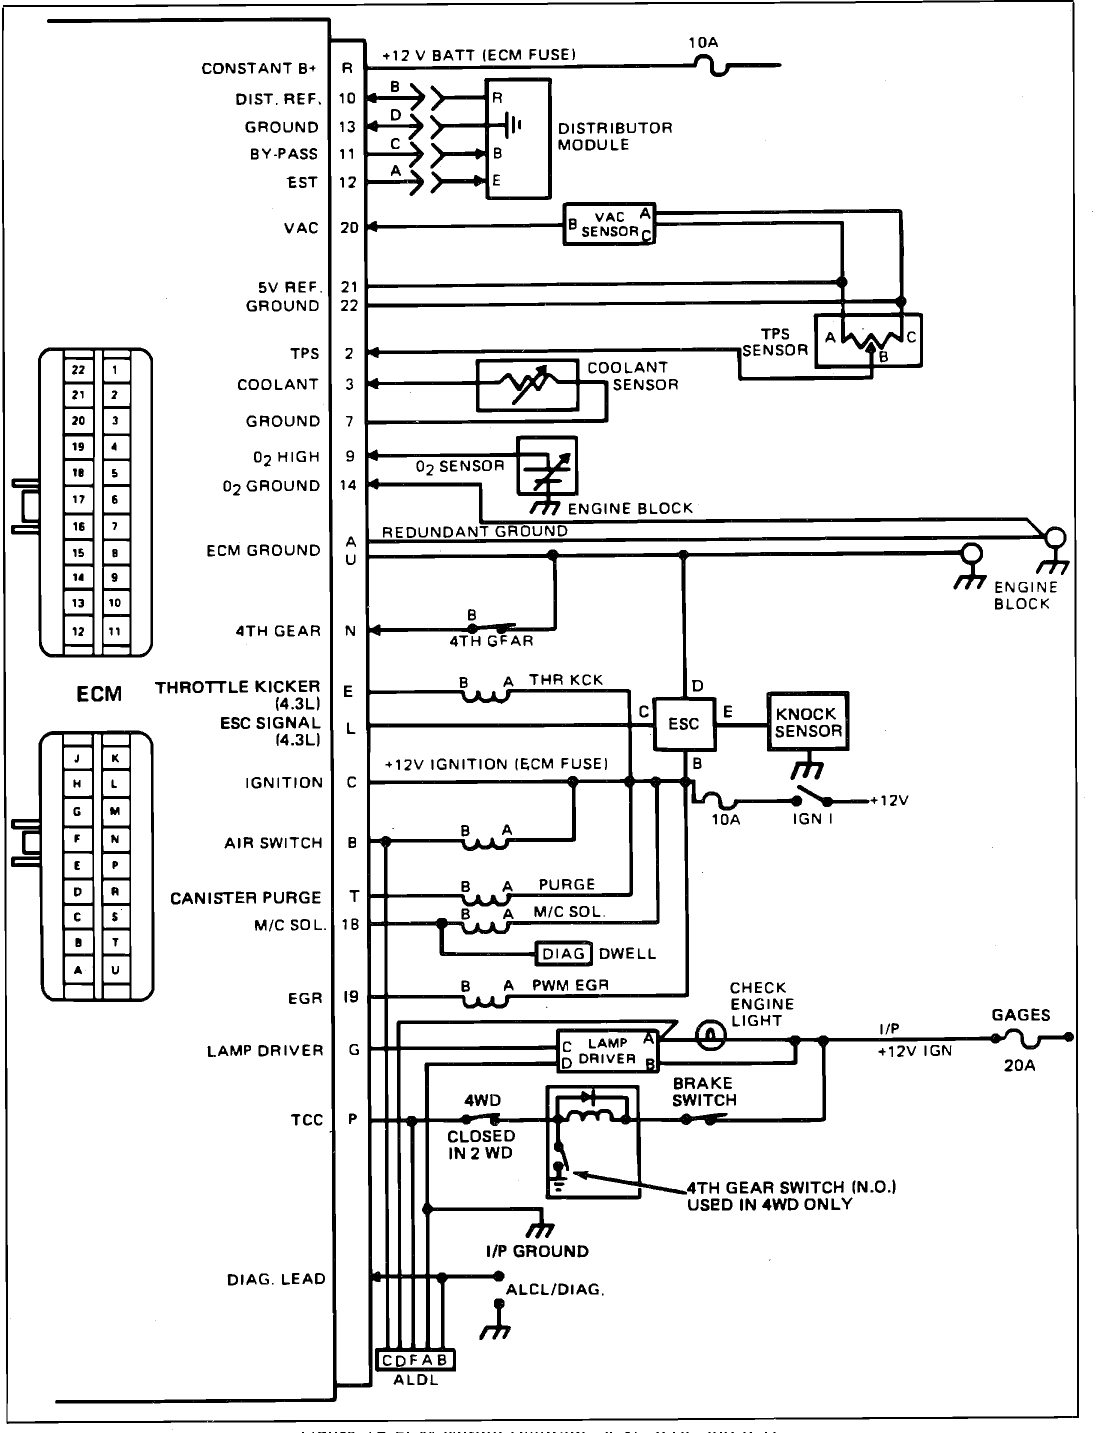 hight resolution of 1995 chevy g20 fuse box wiring diagram schematics mercedes benz e350 fuse box 89 g20